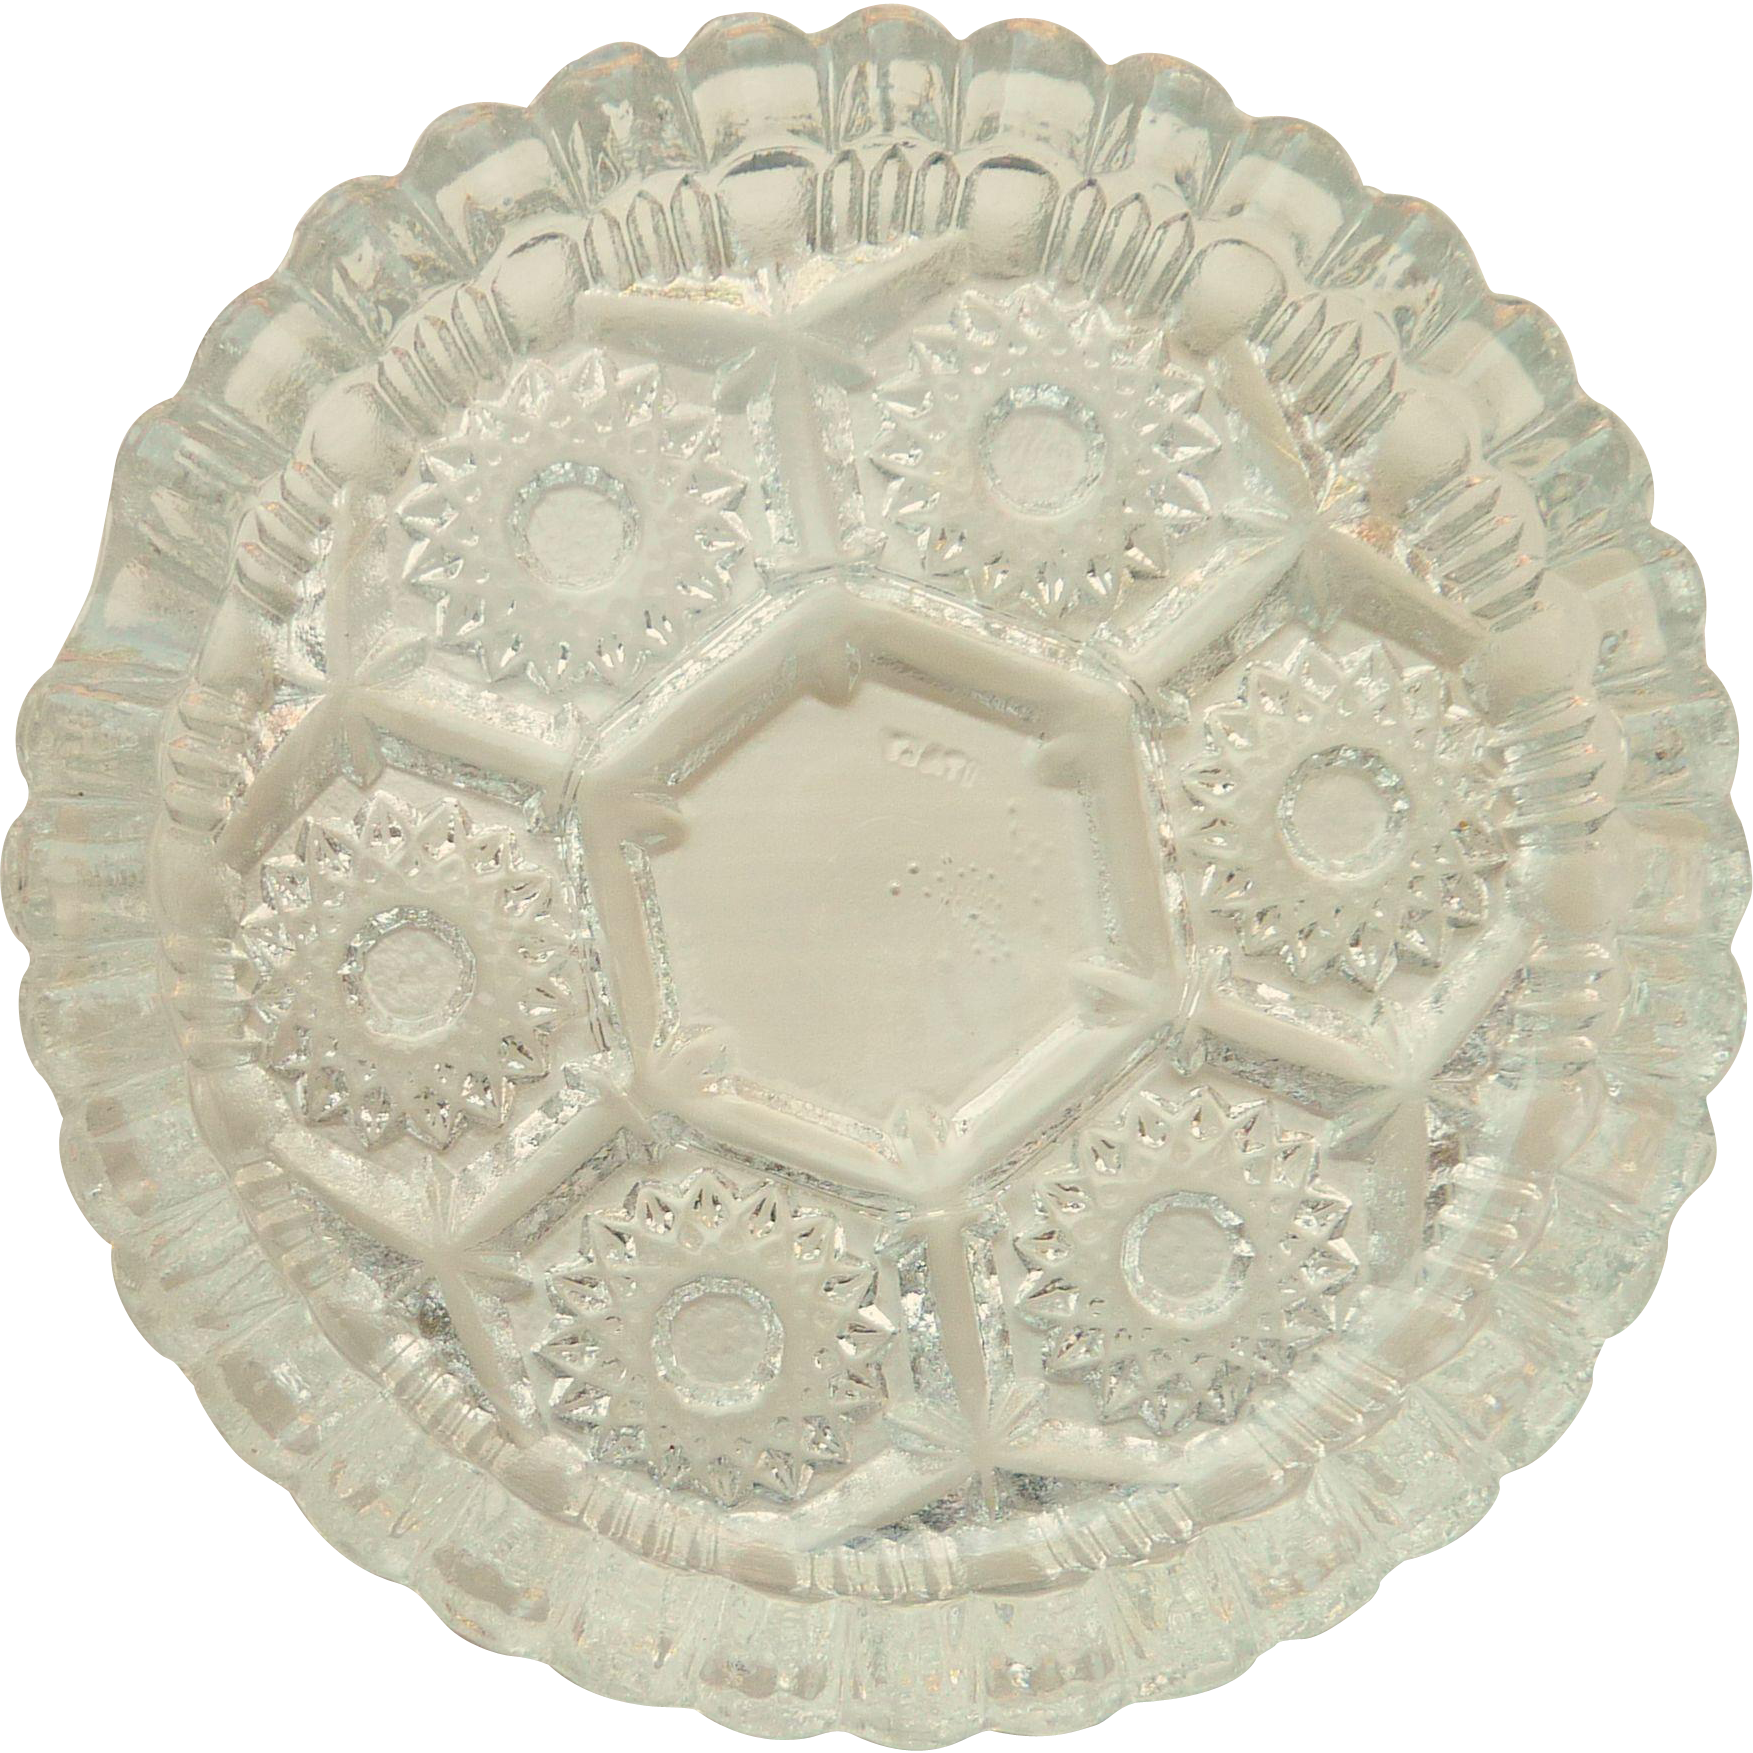 Lovely Pressed Clear Glass Ashtray from Italy